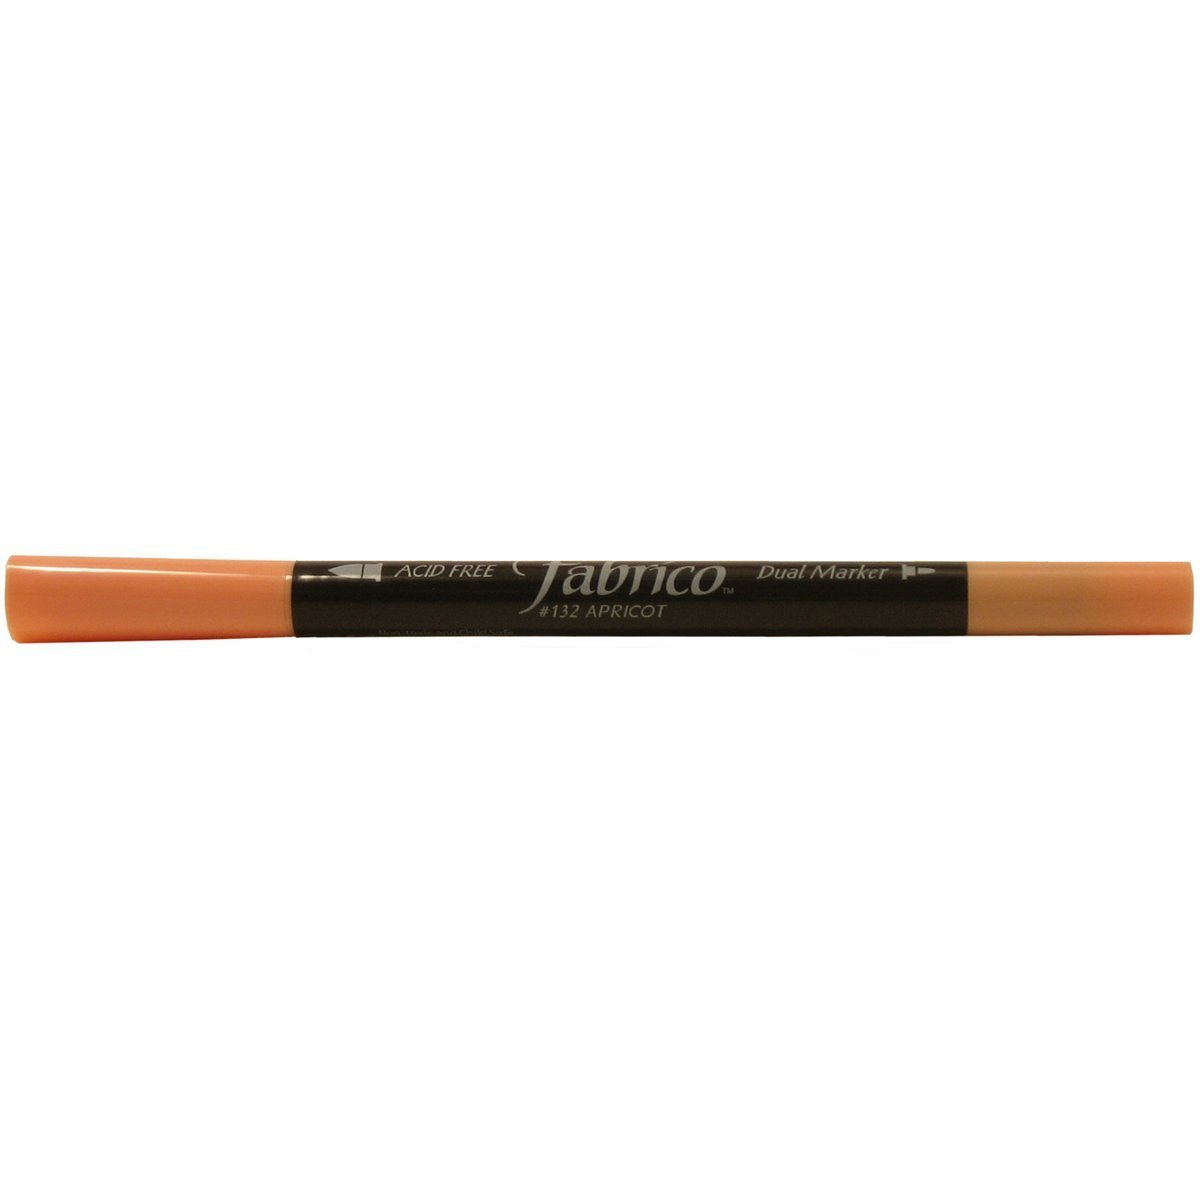 132 Apricot - Fabrico Dual Tip Marker